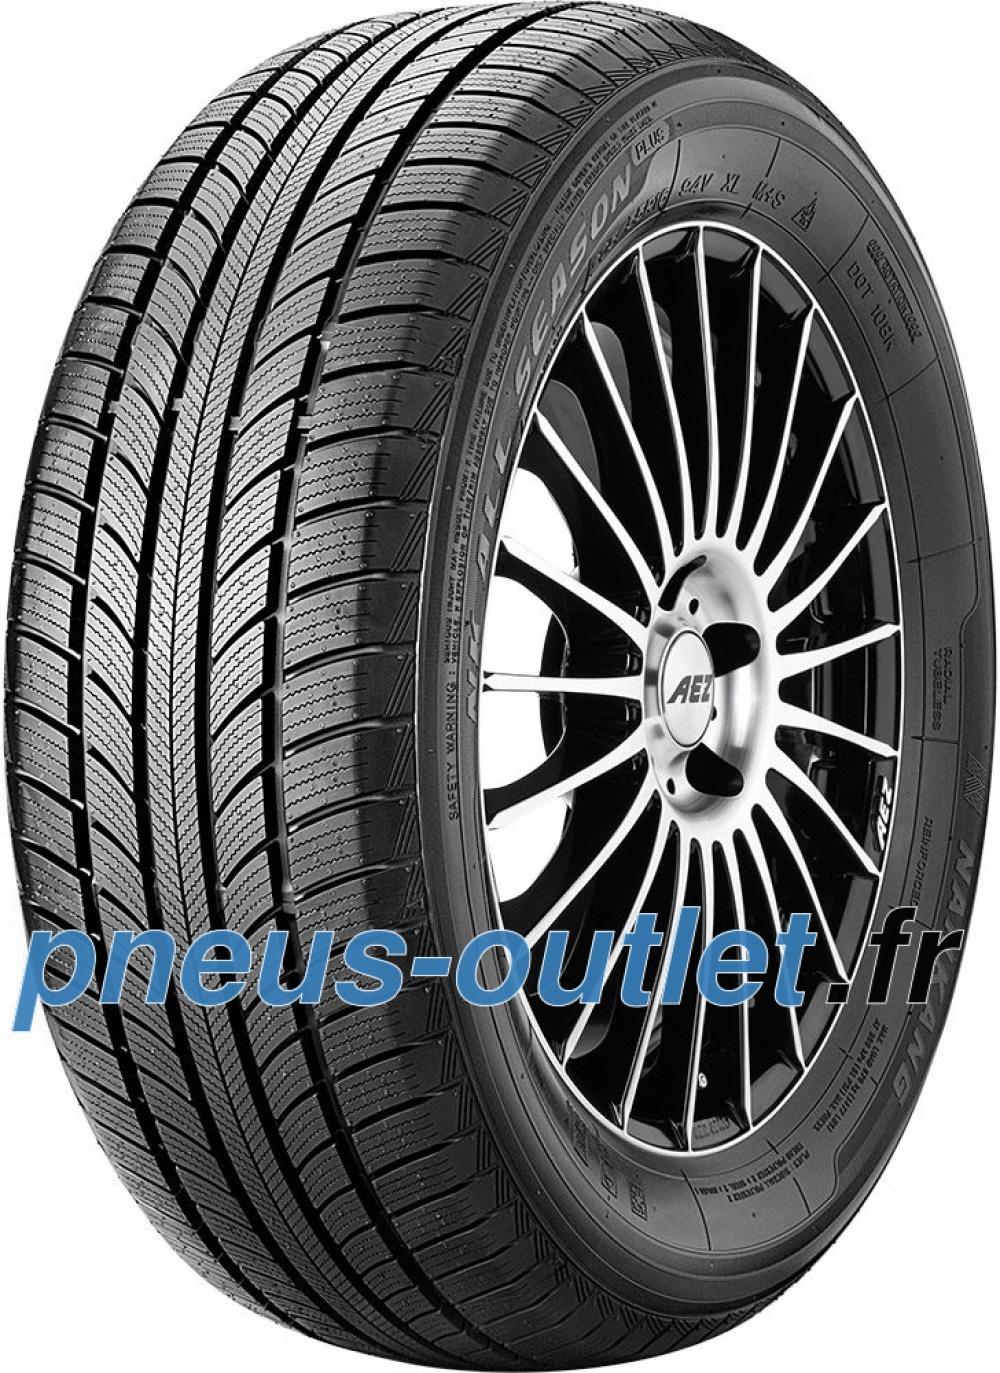 Nankang All Season Plus N-607+ ( 185/65 R14 86H )